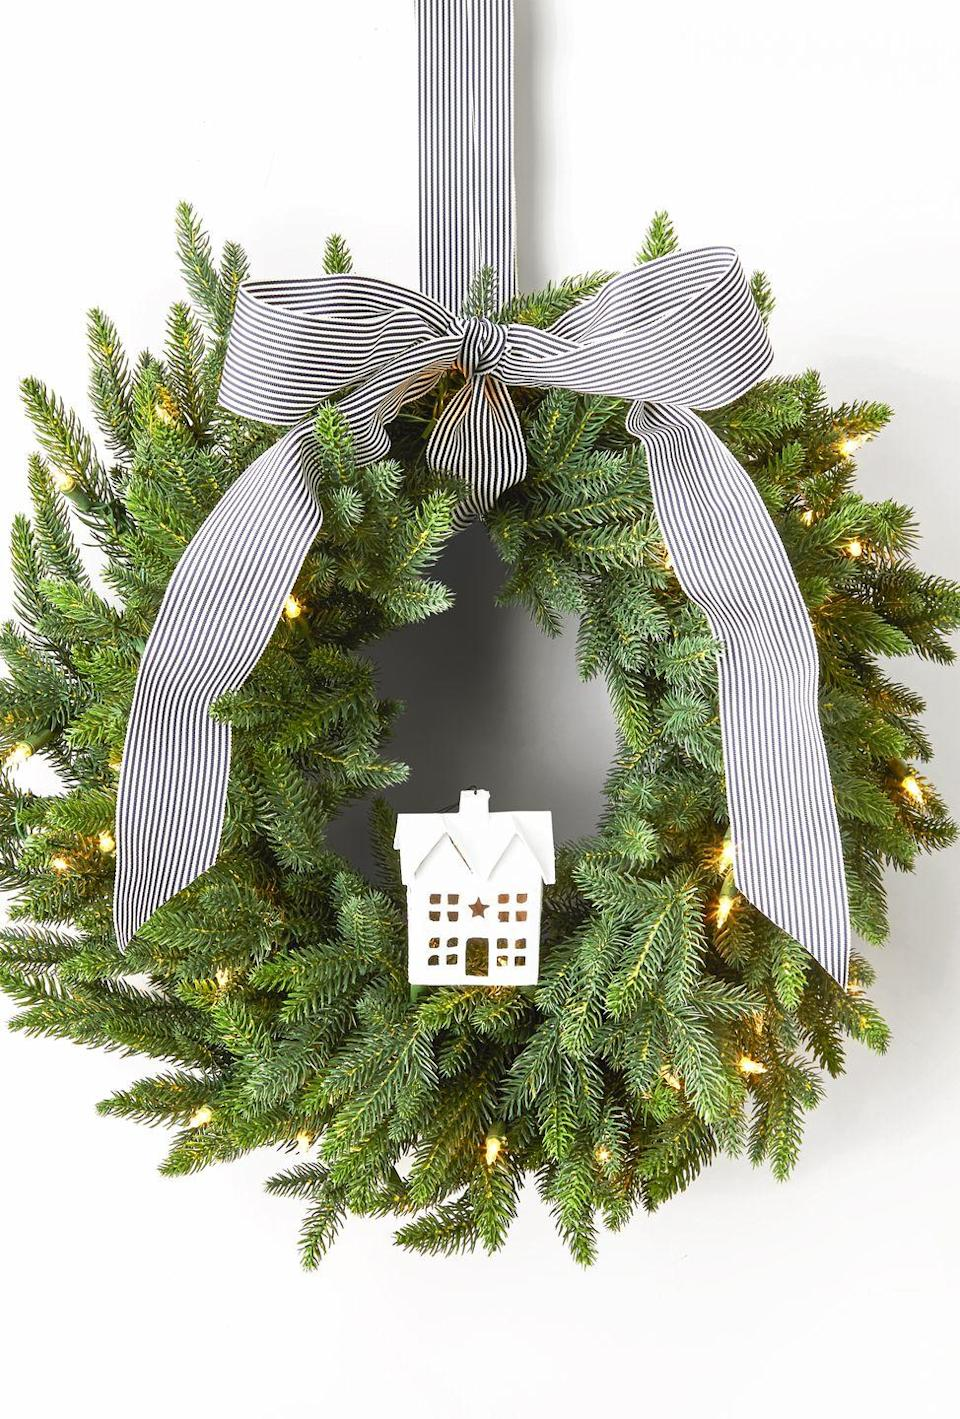 "<p>If the Christmas village on your mantle is too crowded, take one of the ceramic houses and add it to the center of a wreath, hinting at what visitors can expect inside.</p><p><a class=""link rapid-noclick-resp"" href=""https://www.amazon.com/Mark-Feldstein-Porcelain-Tabletop-Christmas/dp/B07HM6QT14/?tag=syn-yahoo-20&ascsubtag=%5Bartid%7C10055.g.2361%5Bsrc%7Cyahoo-us"" rel=""nofollow noopener"" target=""_blank"" data-ylk=""slk:SHOP CERAMIC HOUSES"">SHOP CERAMIC HOUSES</a></p>"